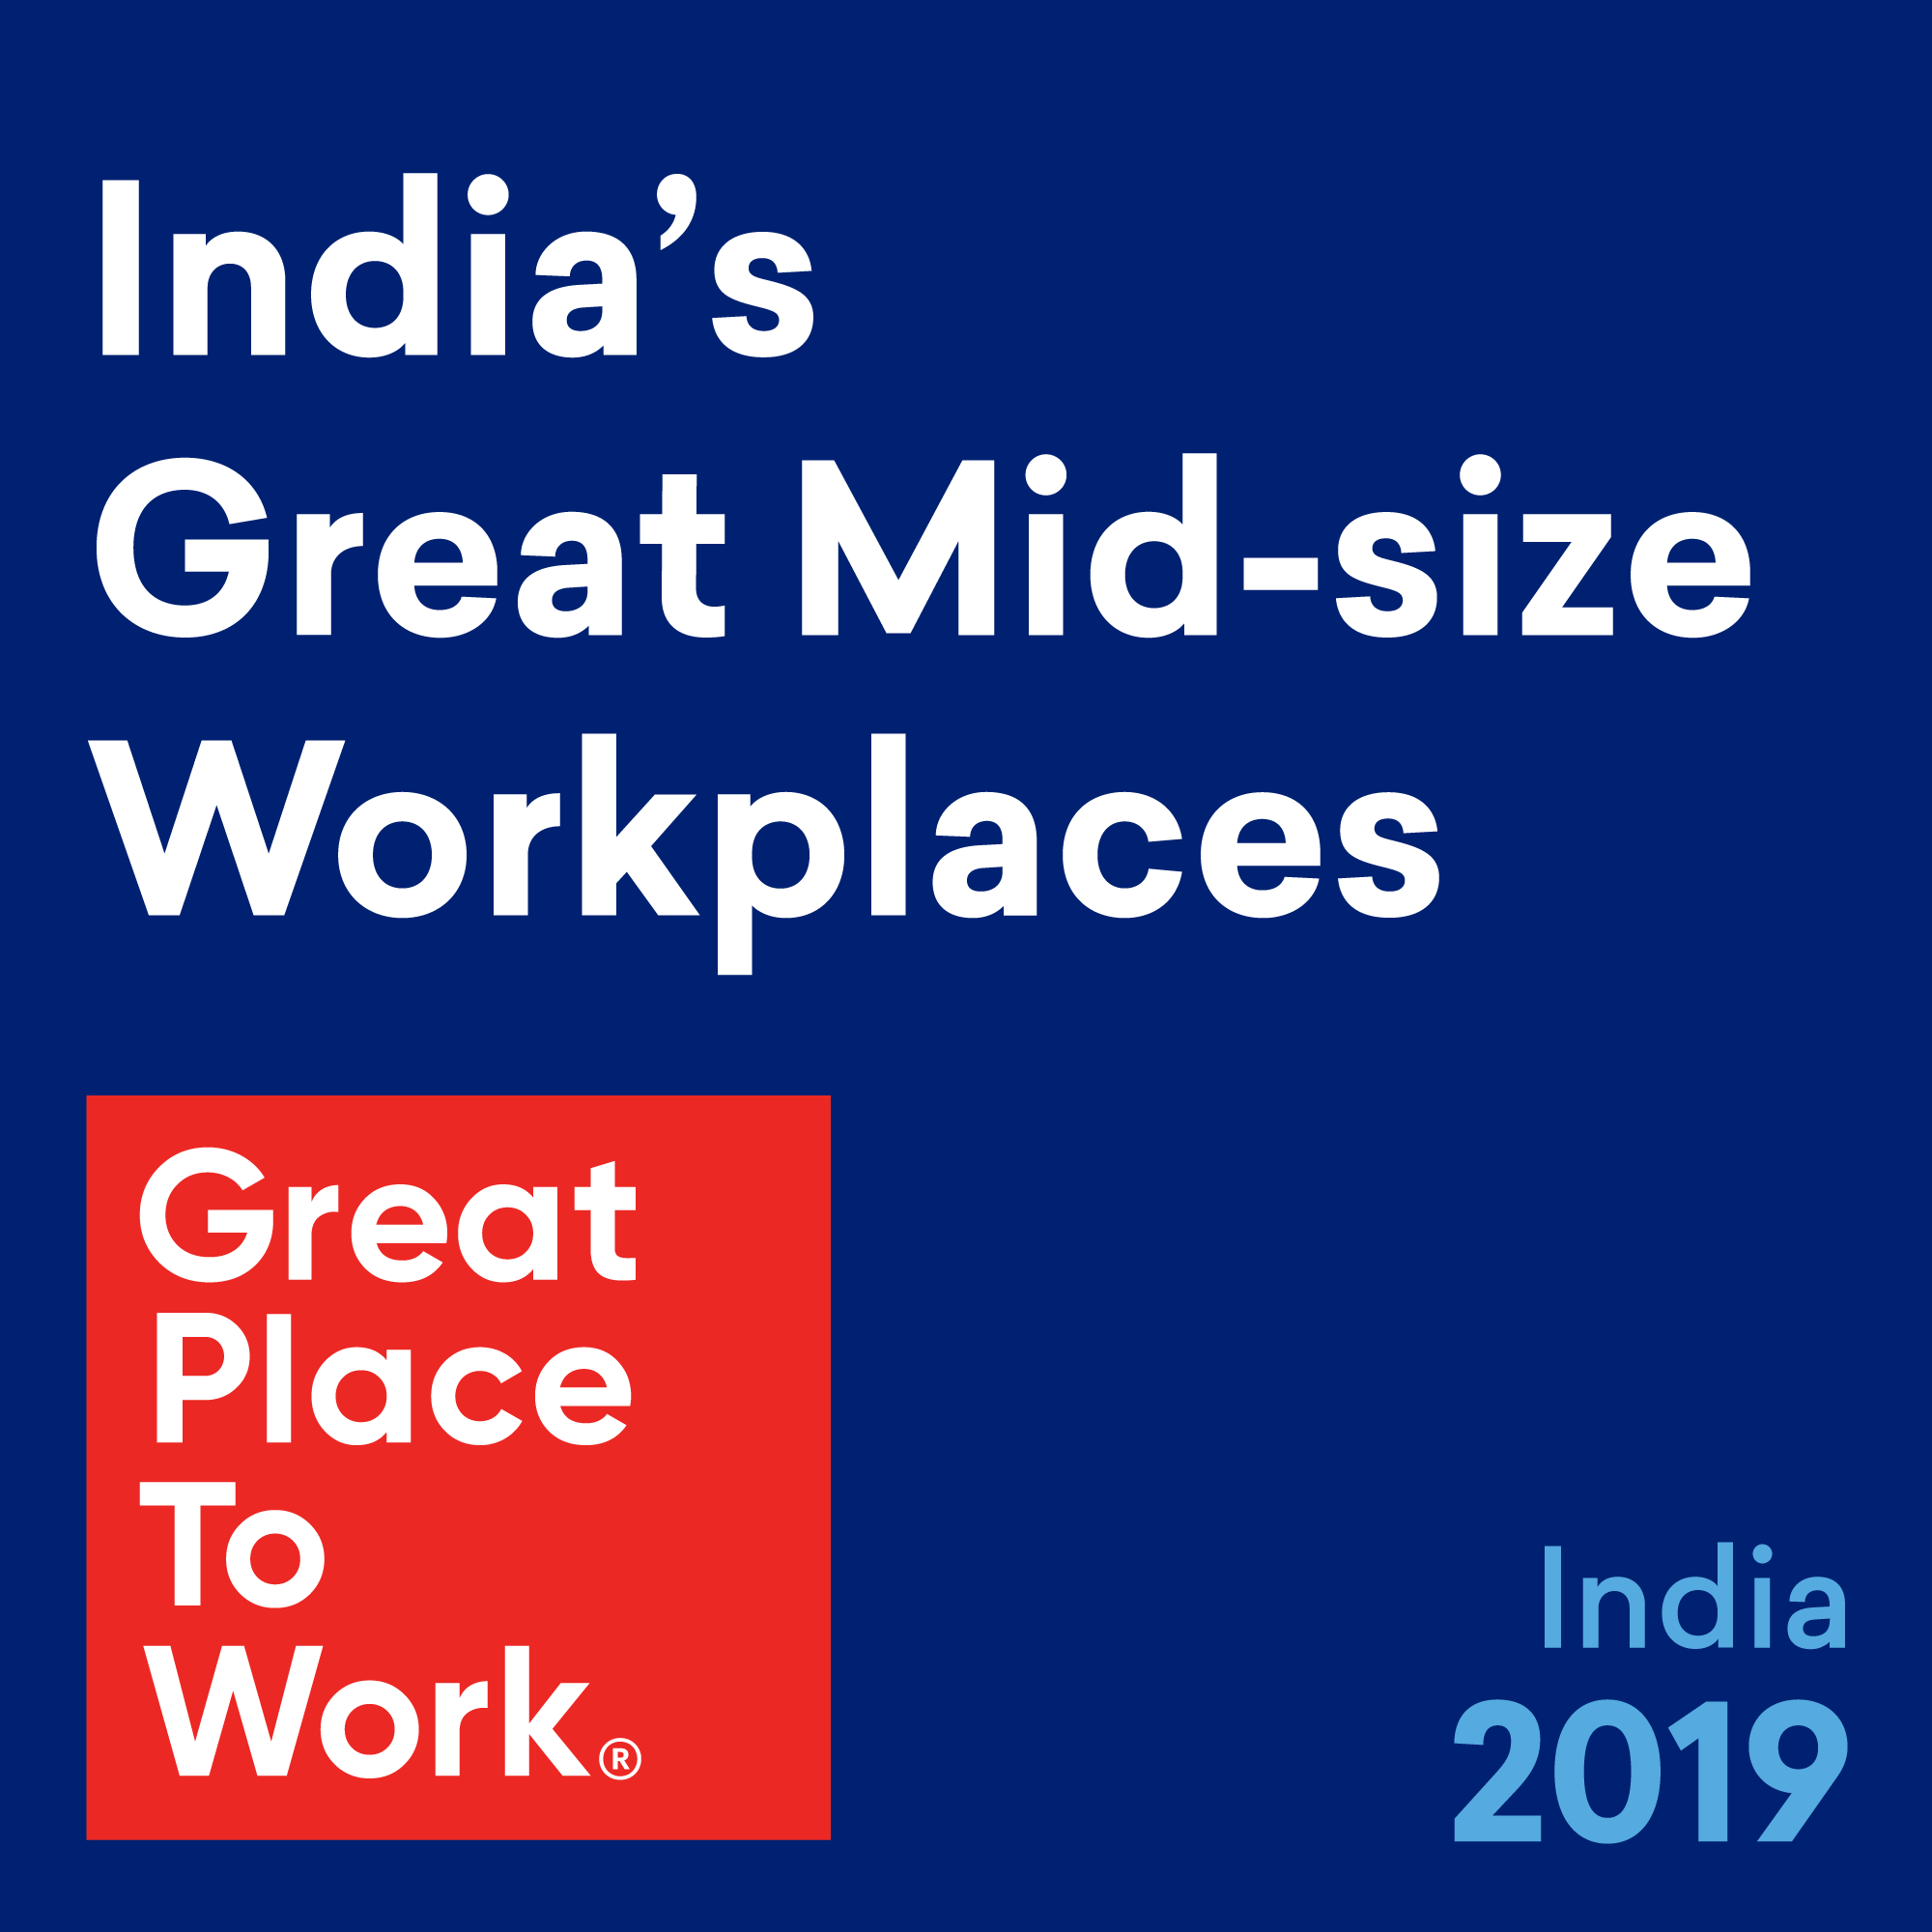 Ryan Named Again to India's Great Mid-Size Workplaces List by Great Place to Work